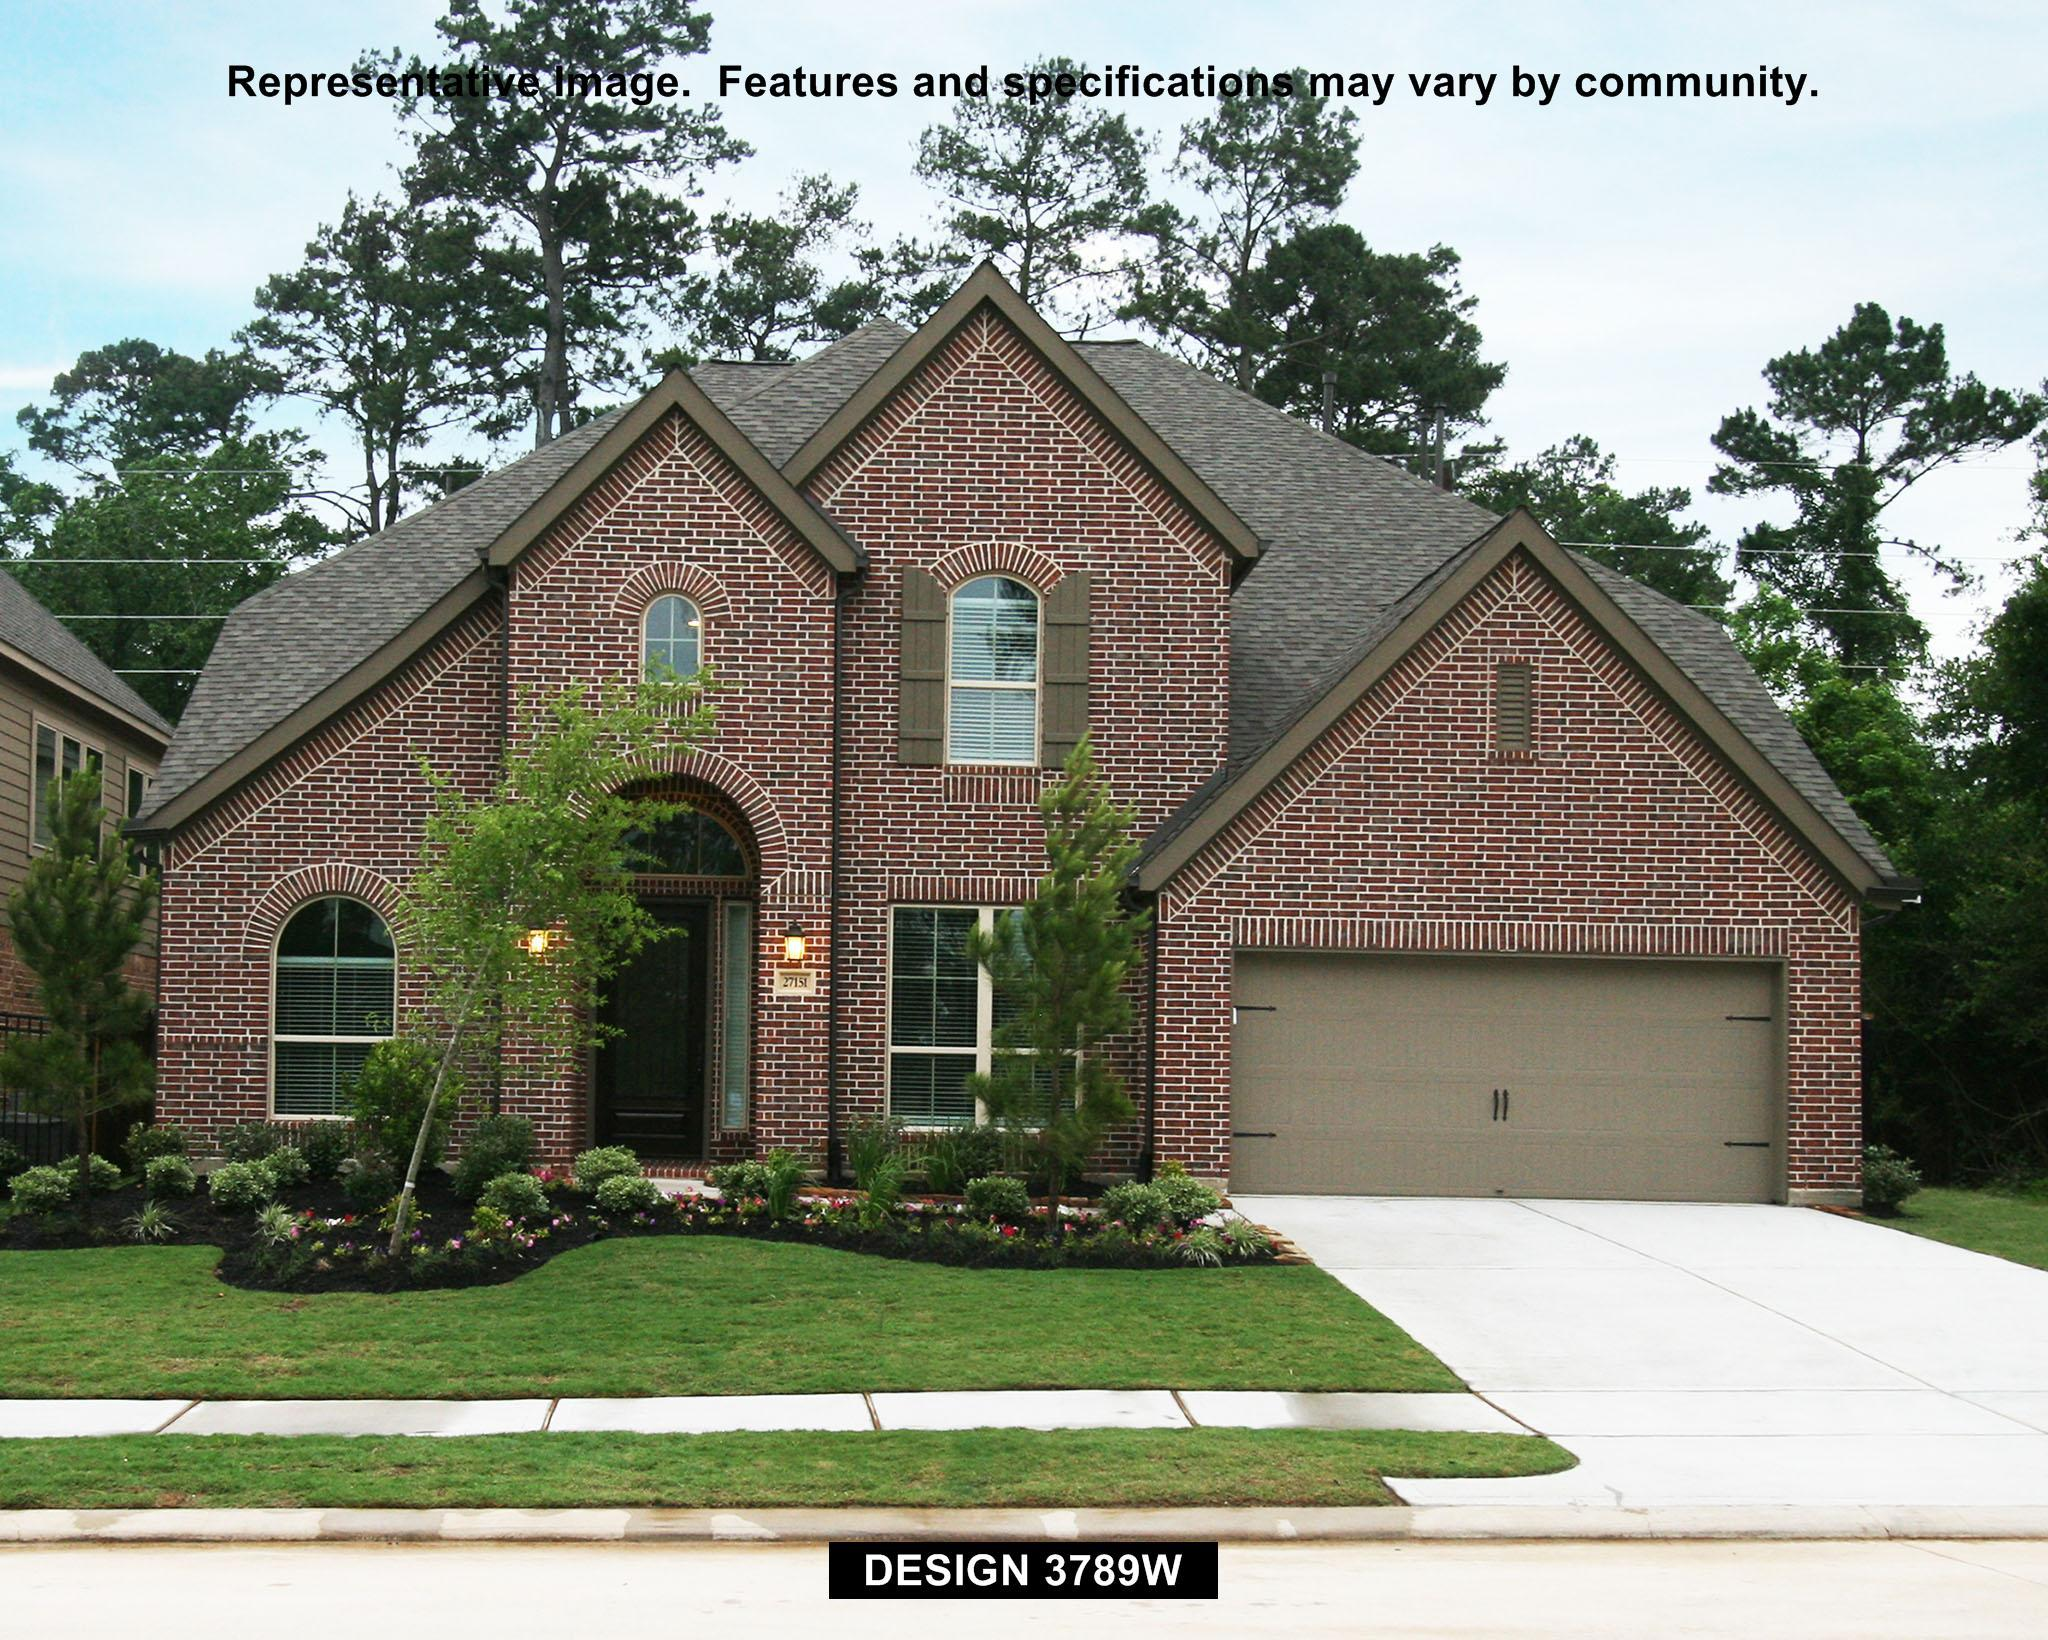 Single Family for Sale at The Village Of Mill Creek 60' - 3789w 3004 Saddlehorn Drive Seguin, Texas 78155 United States